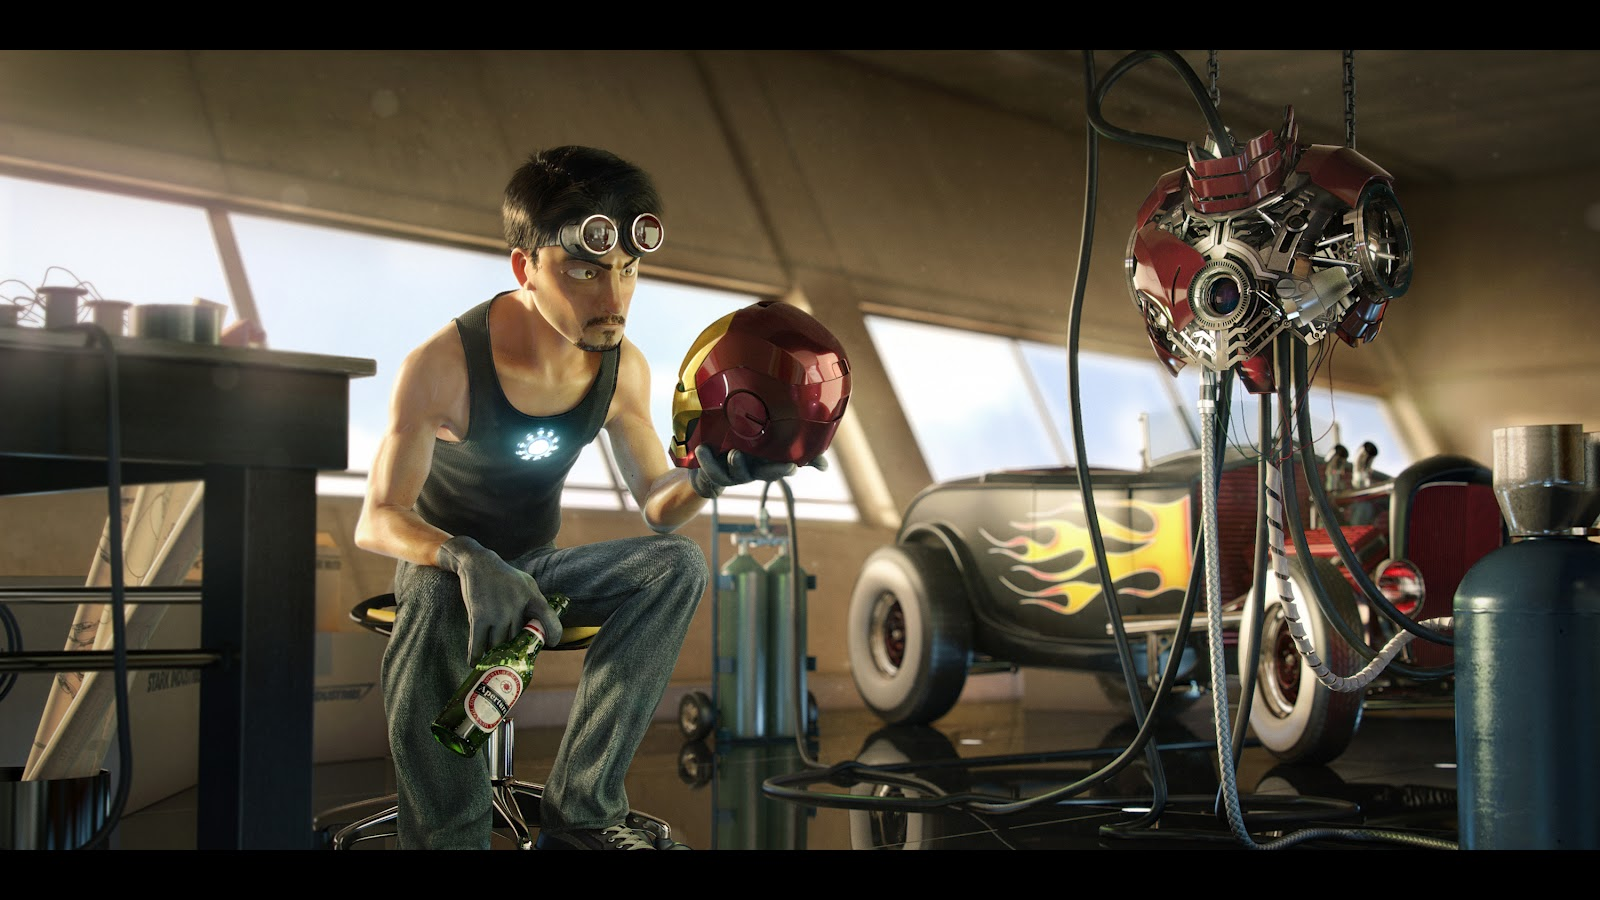 Fashion and action iron man pixar style cg fan art by